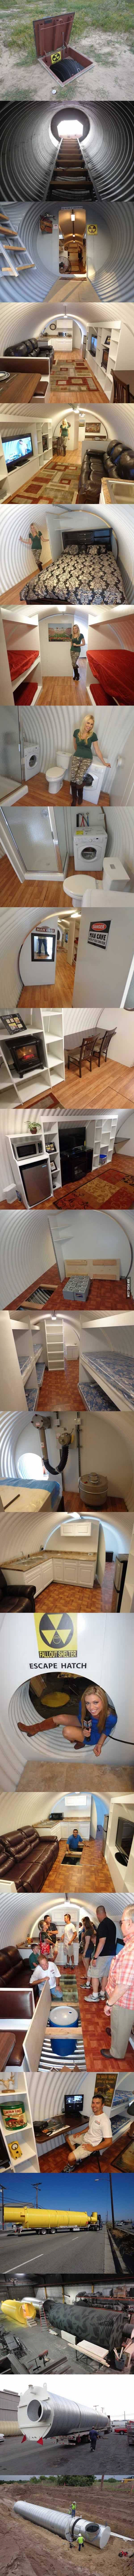 A fall-out shelter that is better than people's houses - 9GAG